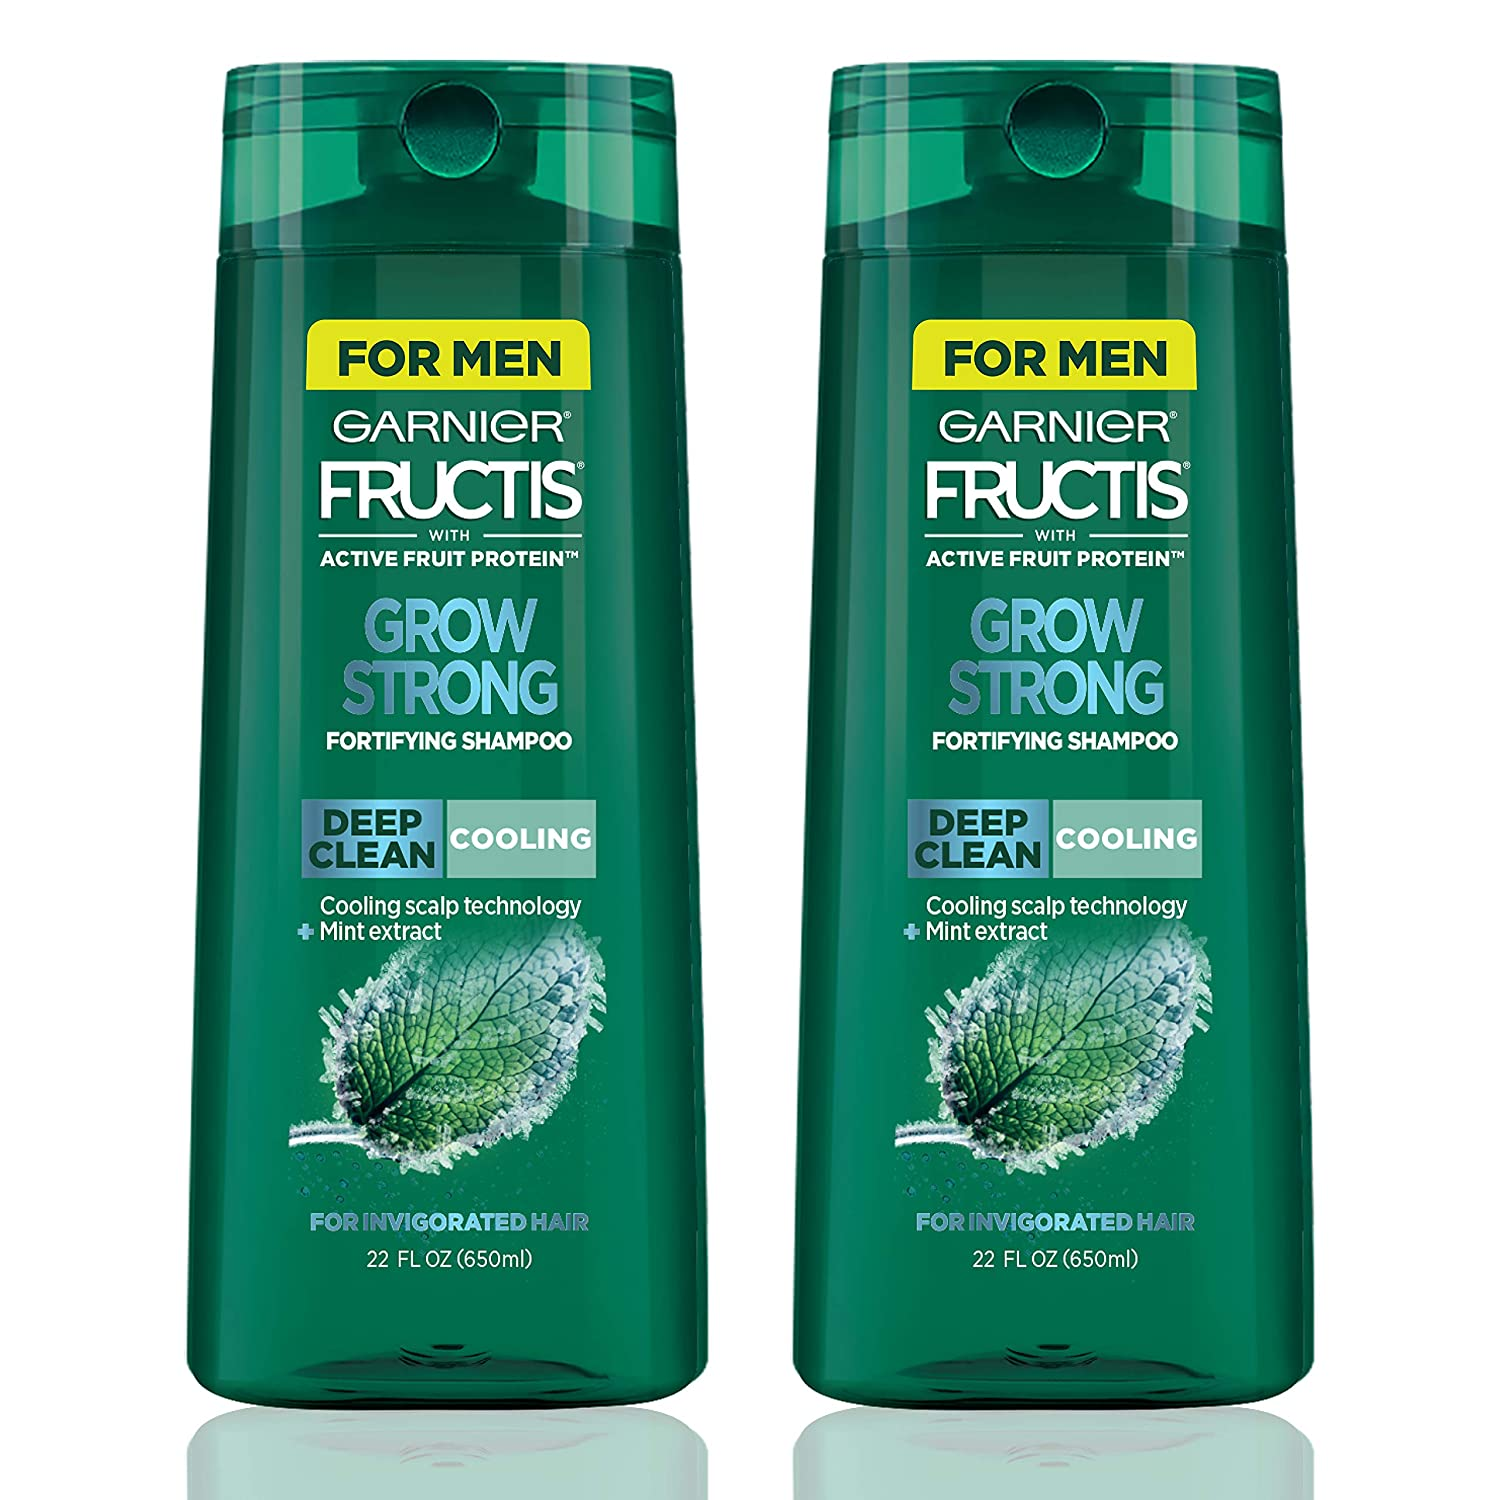 Garnier Hair Care Fructis Grow Strong Cooling Deep Clean Shampoo for Men for Invigorated Hair, 22 Fl Oz